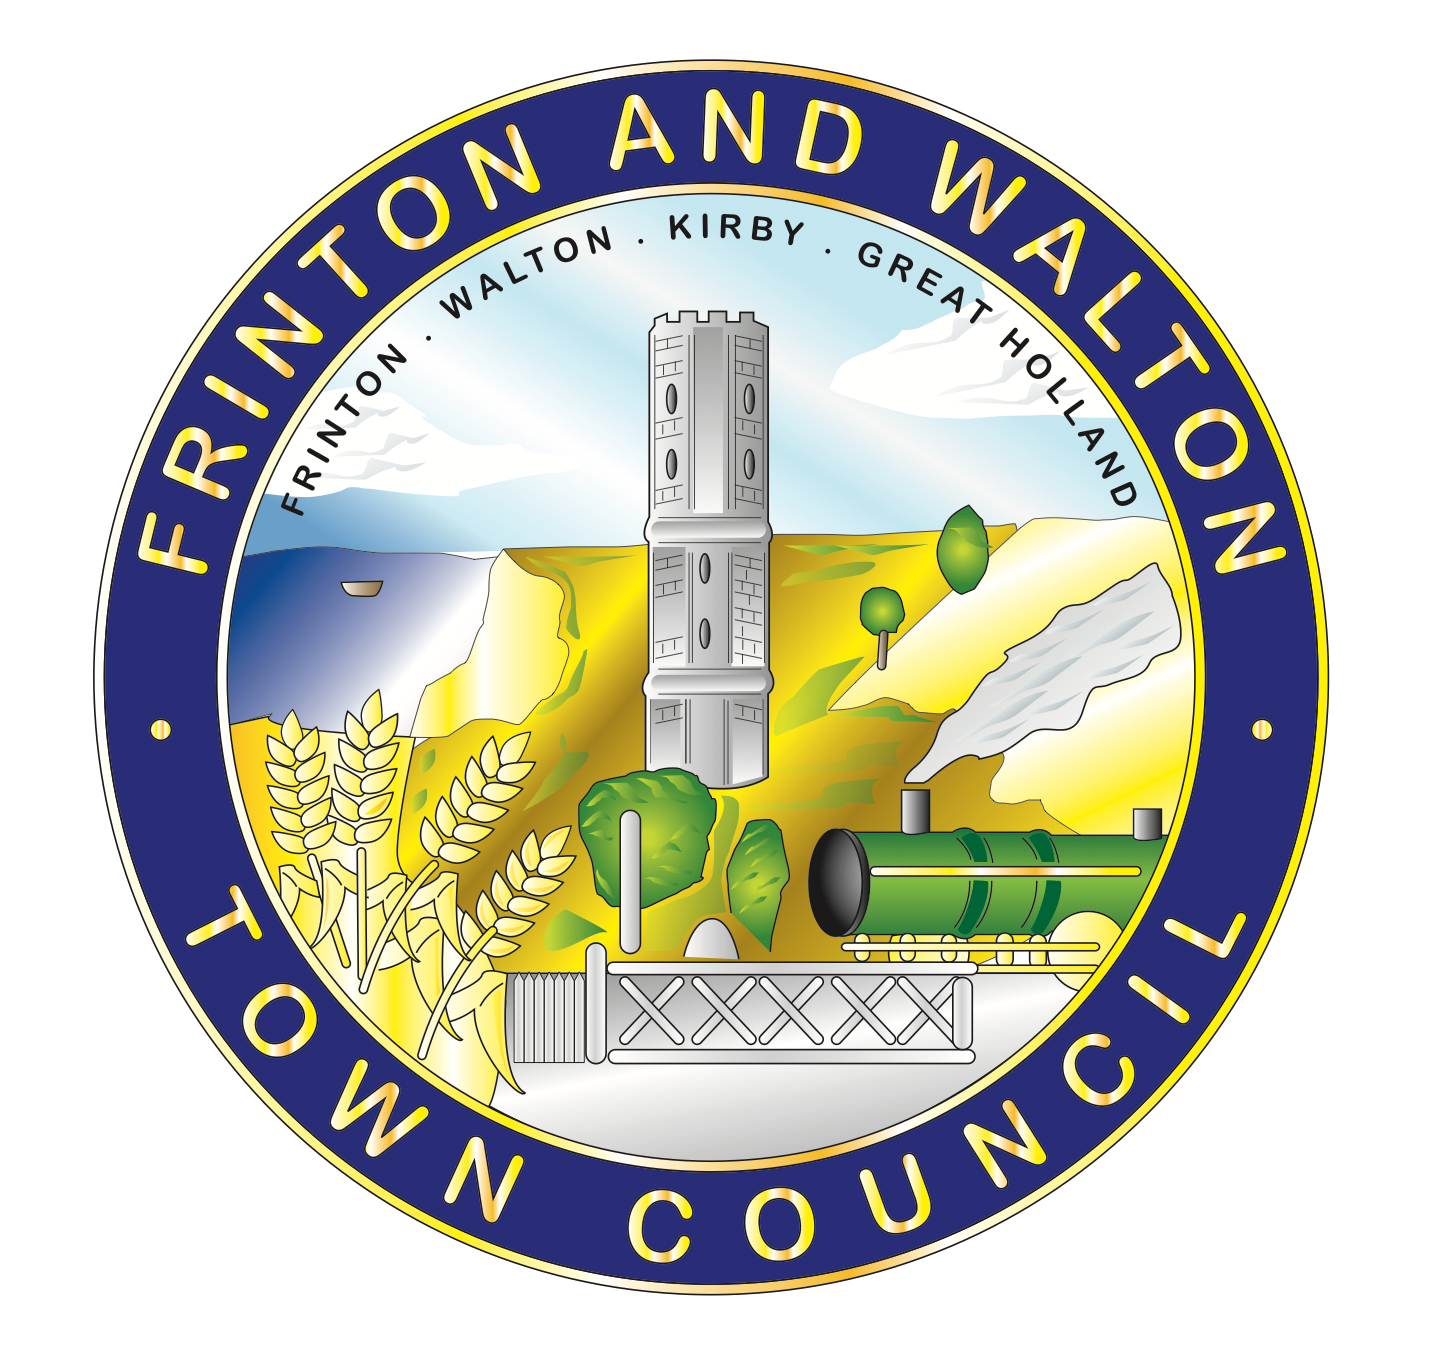 Frinton and Walton Town Council Logo